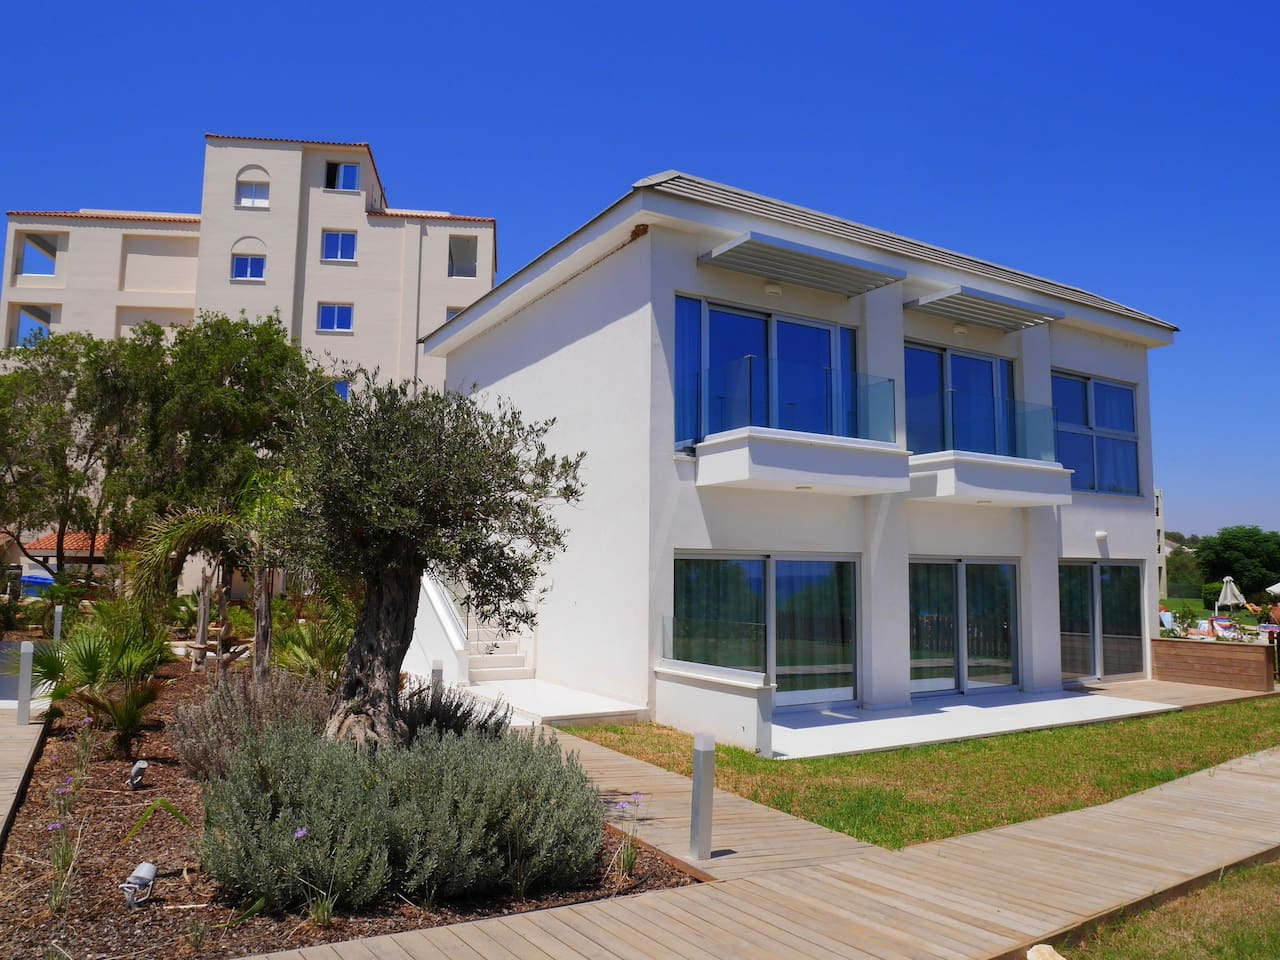 2 Bed Luxury Apt with Large Communal Pool - B2-101 photo 19263732